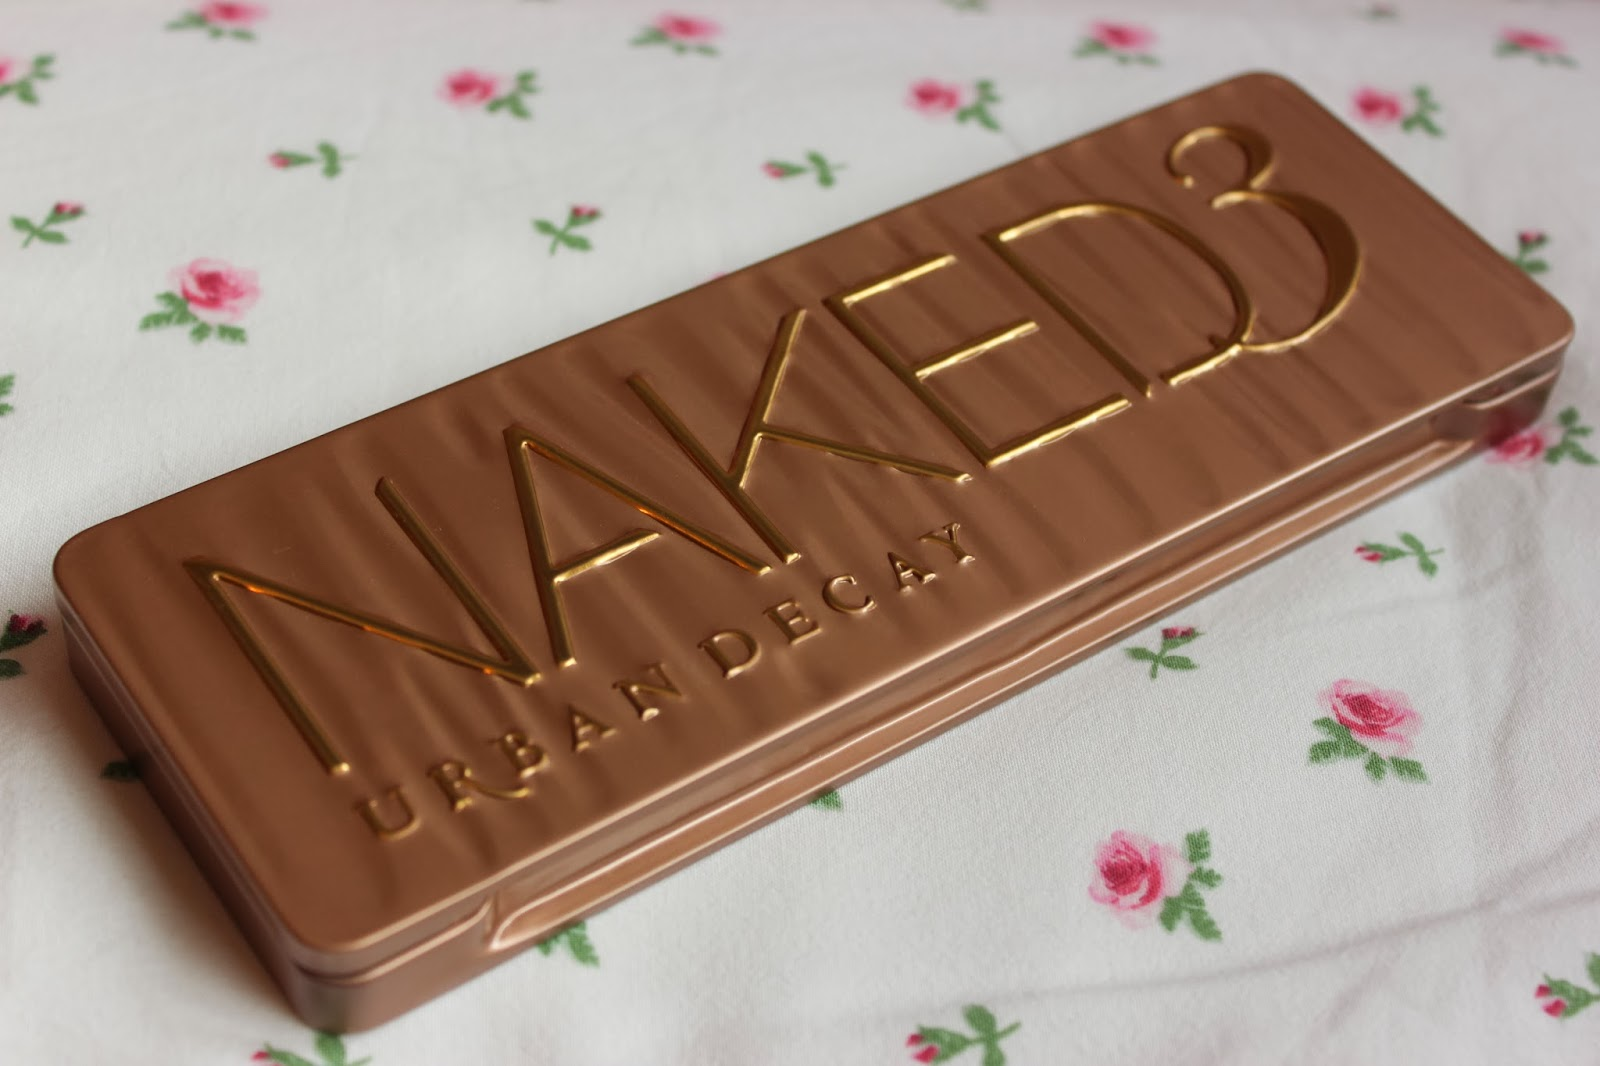 Urban Decay Naked 3 palette review - BLONDIE BEAUTY FASHION